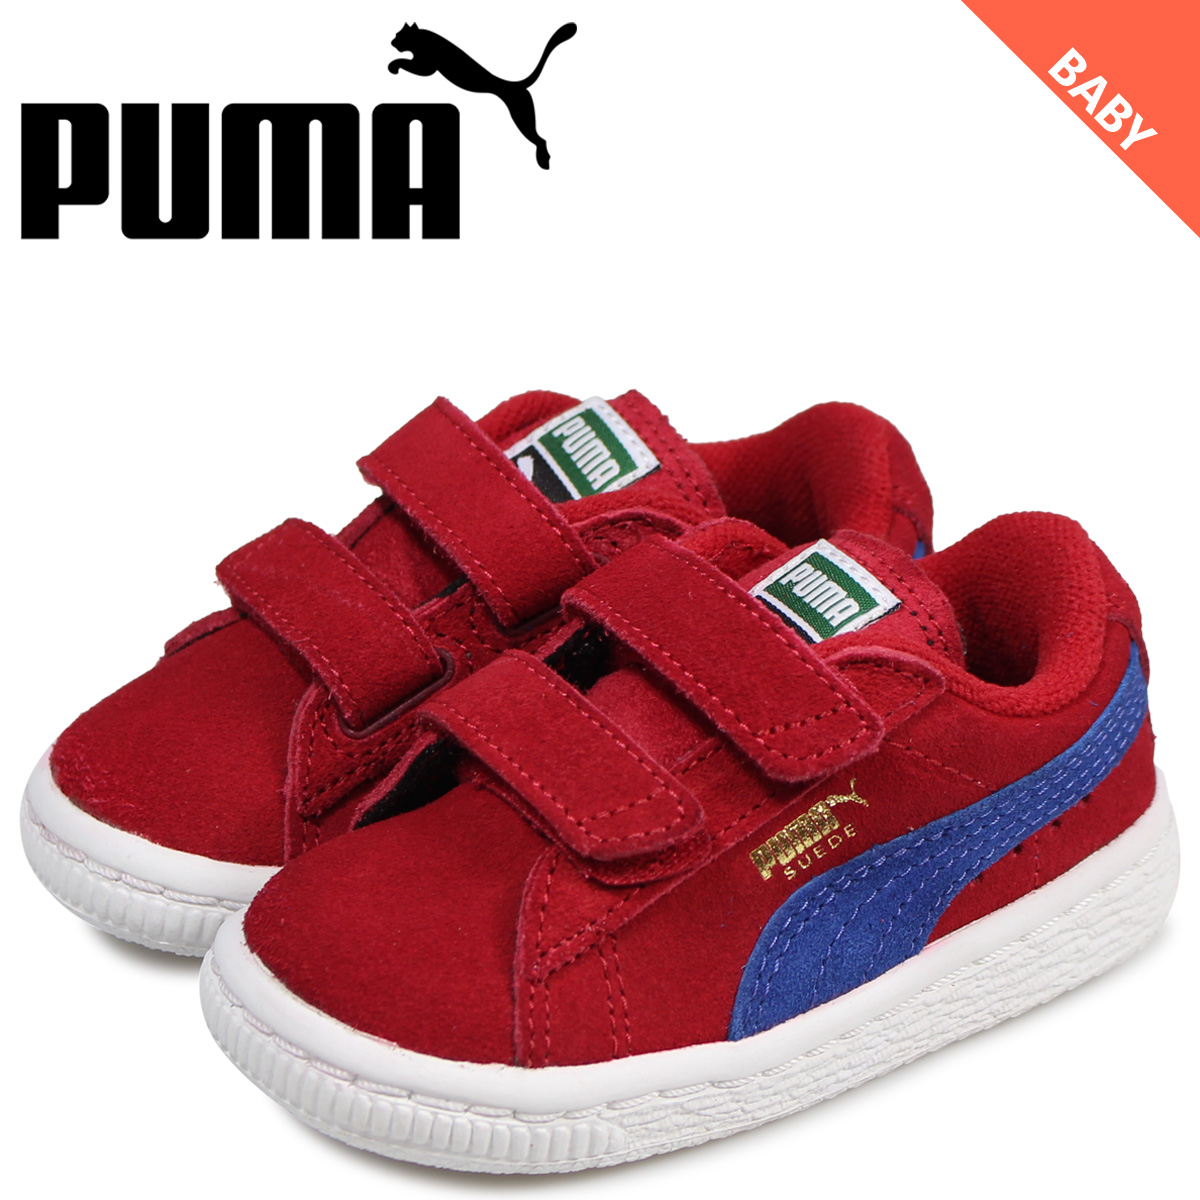 PUMA Puma suede sneakers baby kids SUEDE 2 STRAPS KIDS red 35627463